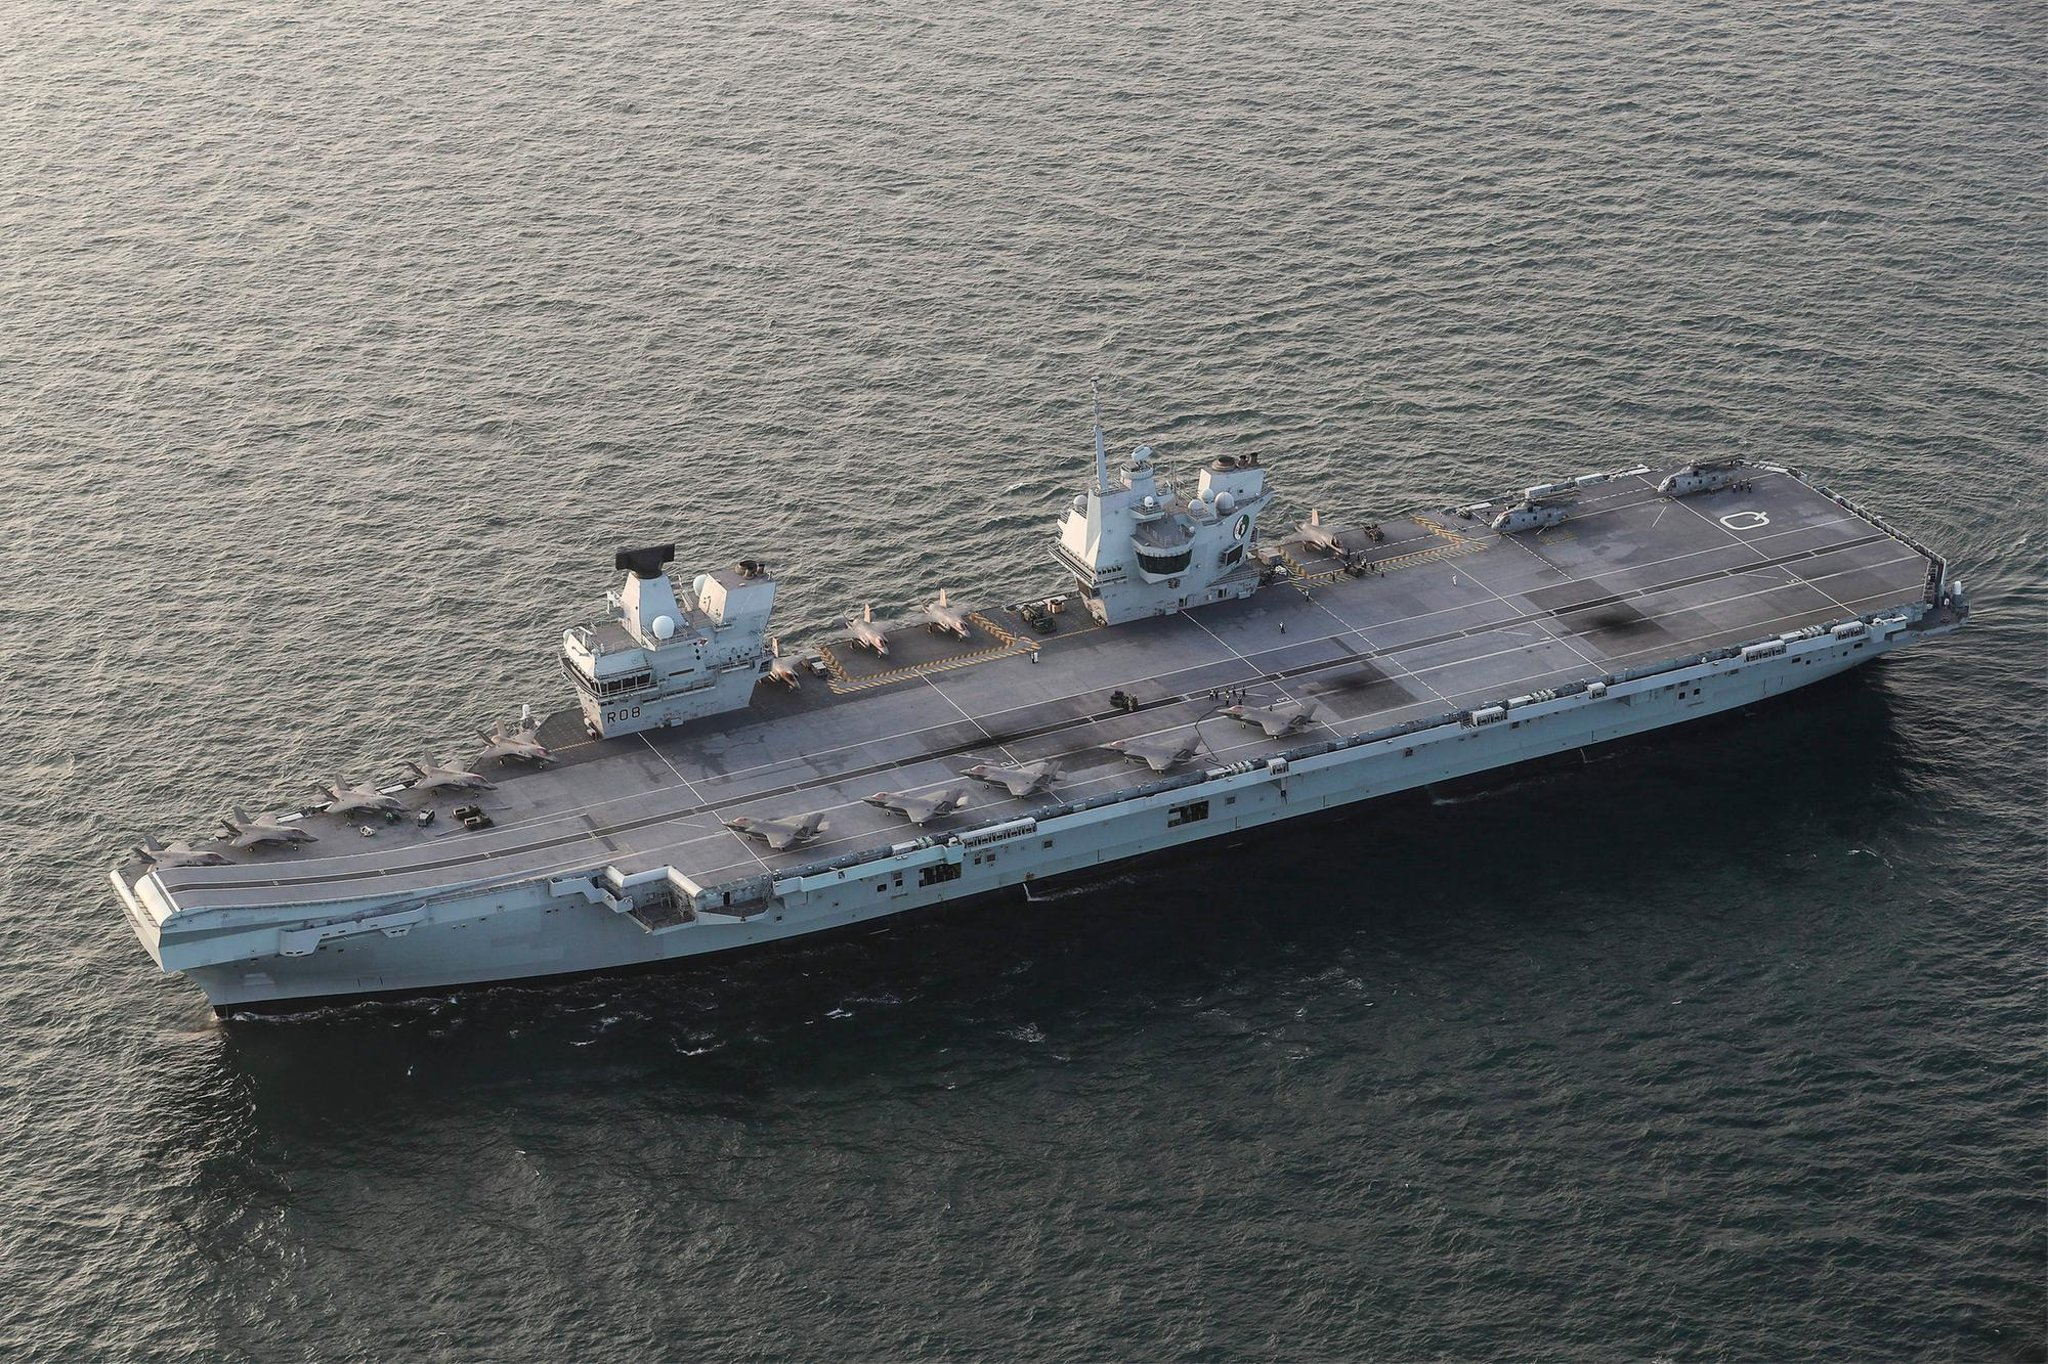 American destroyer will act as bodyguard to HMS Queen Elizabeth on Far East mission